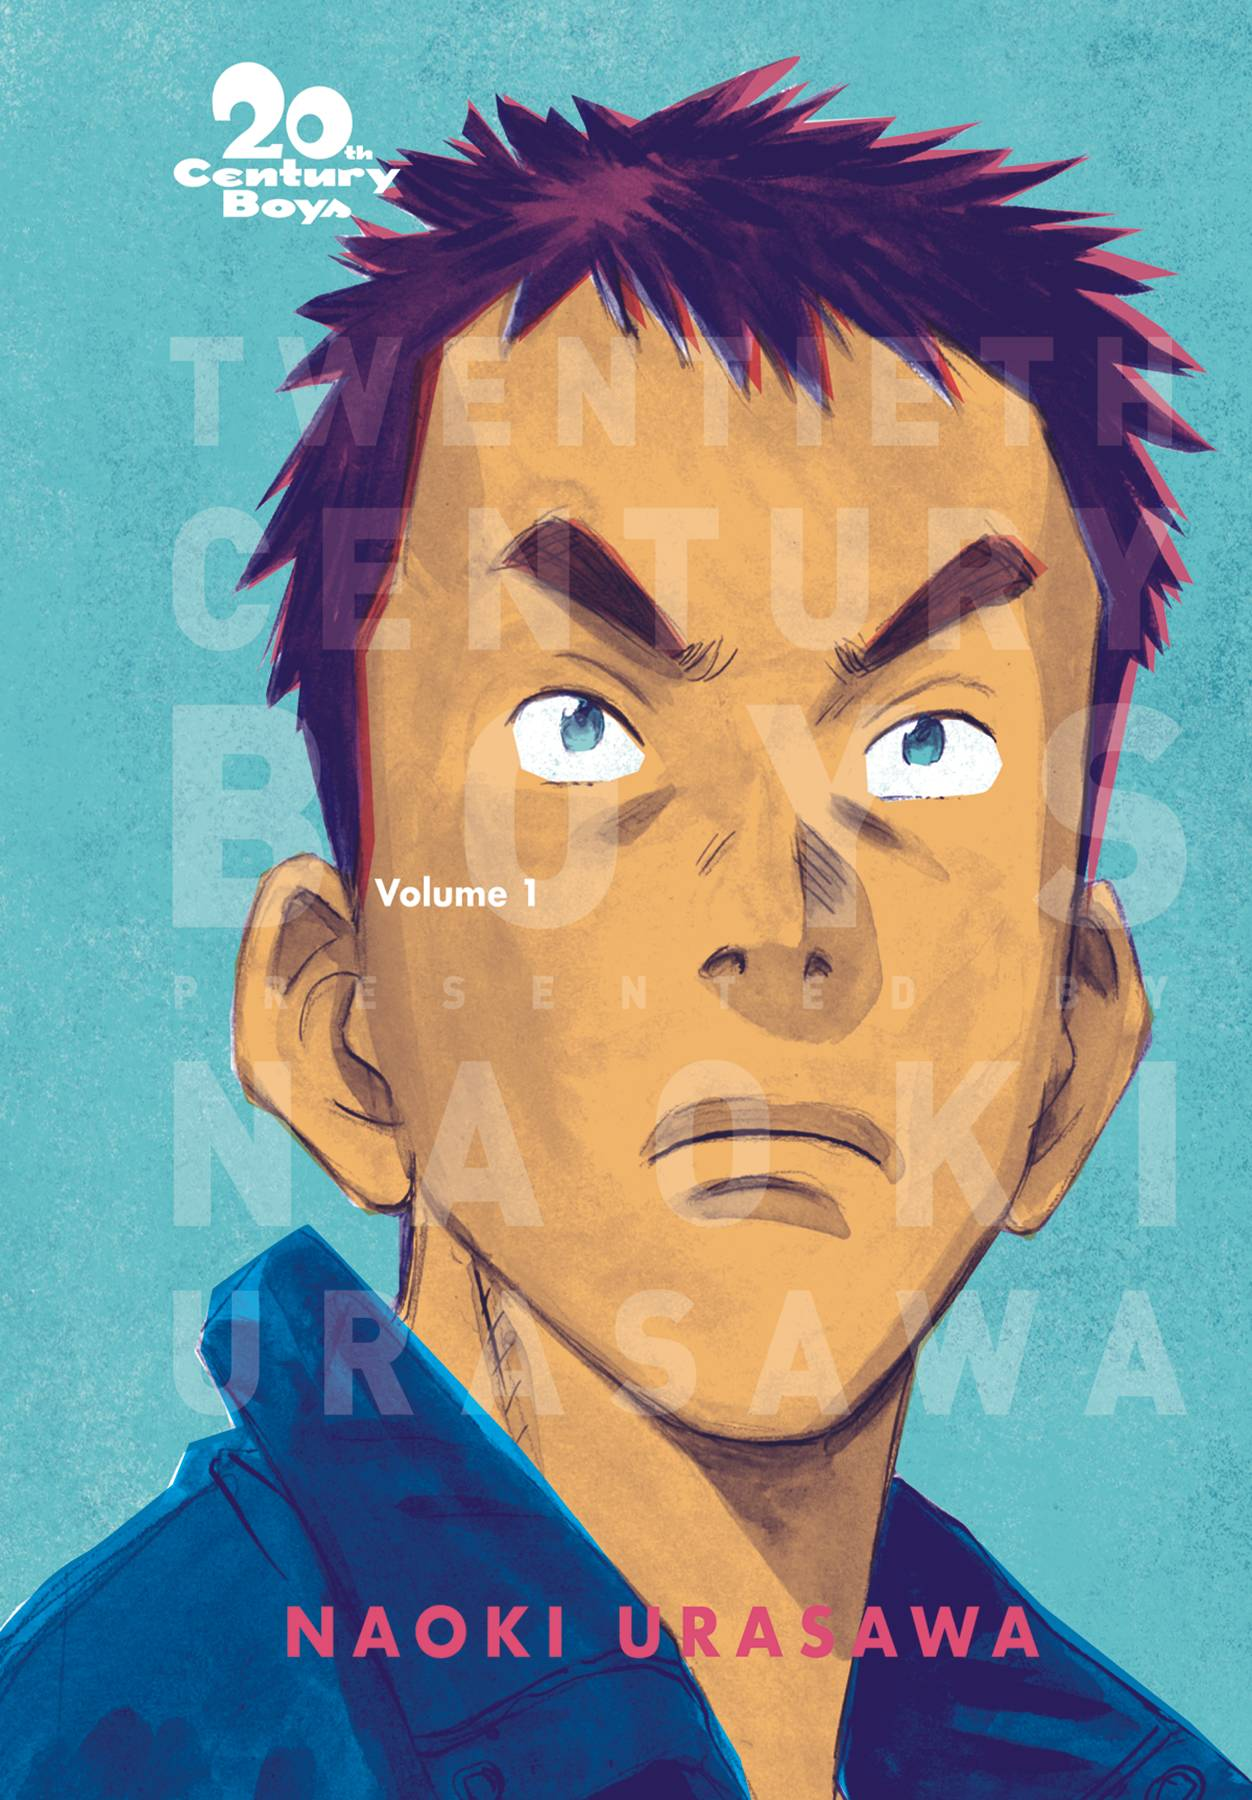 20th Century Boys - Perfect Edition Volume 1